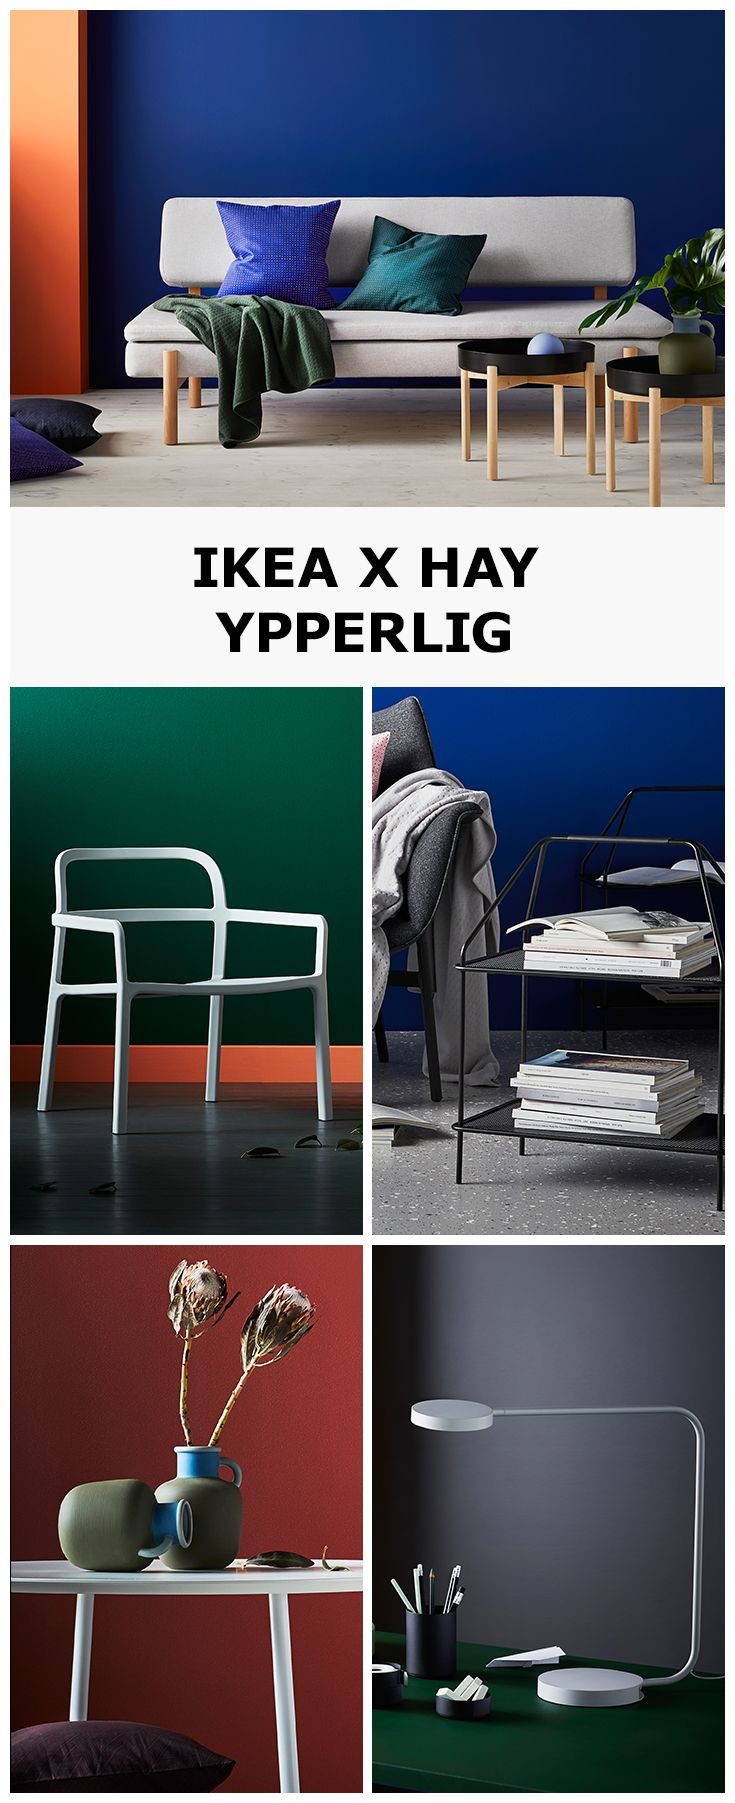 We're excited to introduce YPPERLIG, our new collaboration with Danish design company Hay. The result is a collection of contemporary yet ageless statement pieces. From comfy sofas to smart and practical coffee tables, each have been made by combining high quality materials, colours and production techniques with modern needs and wants in mind.